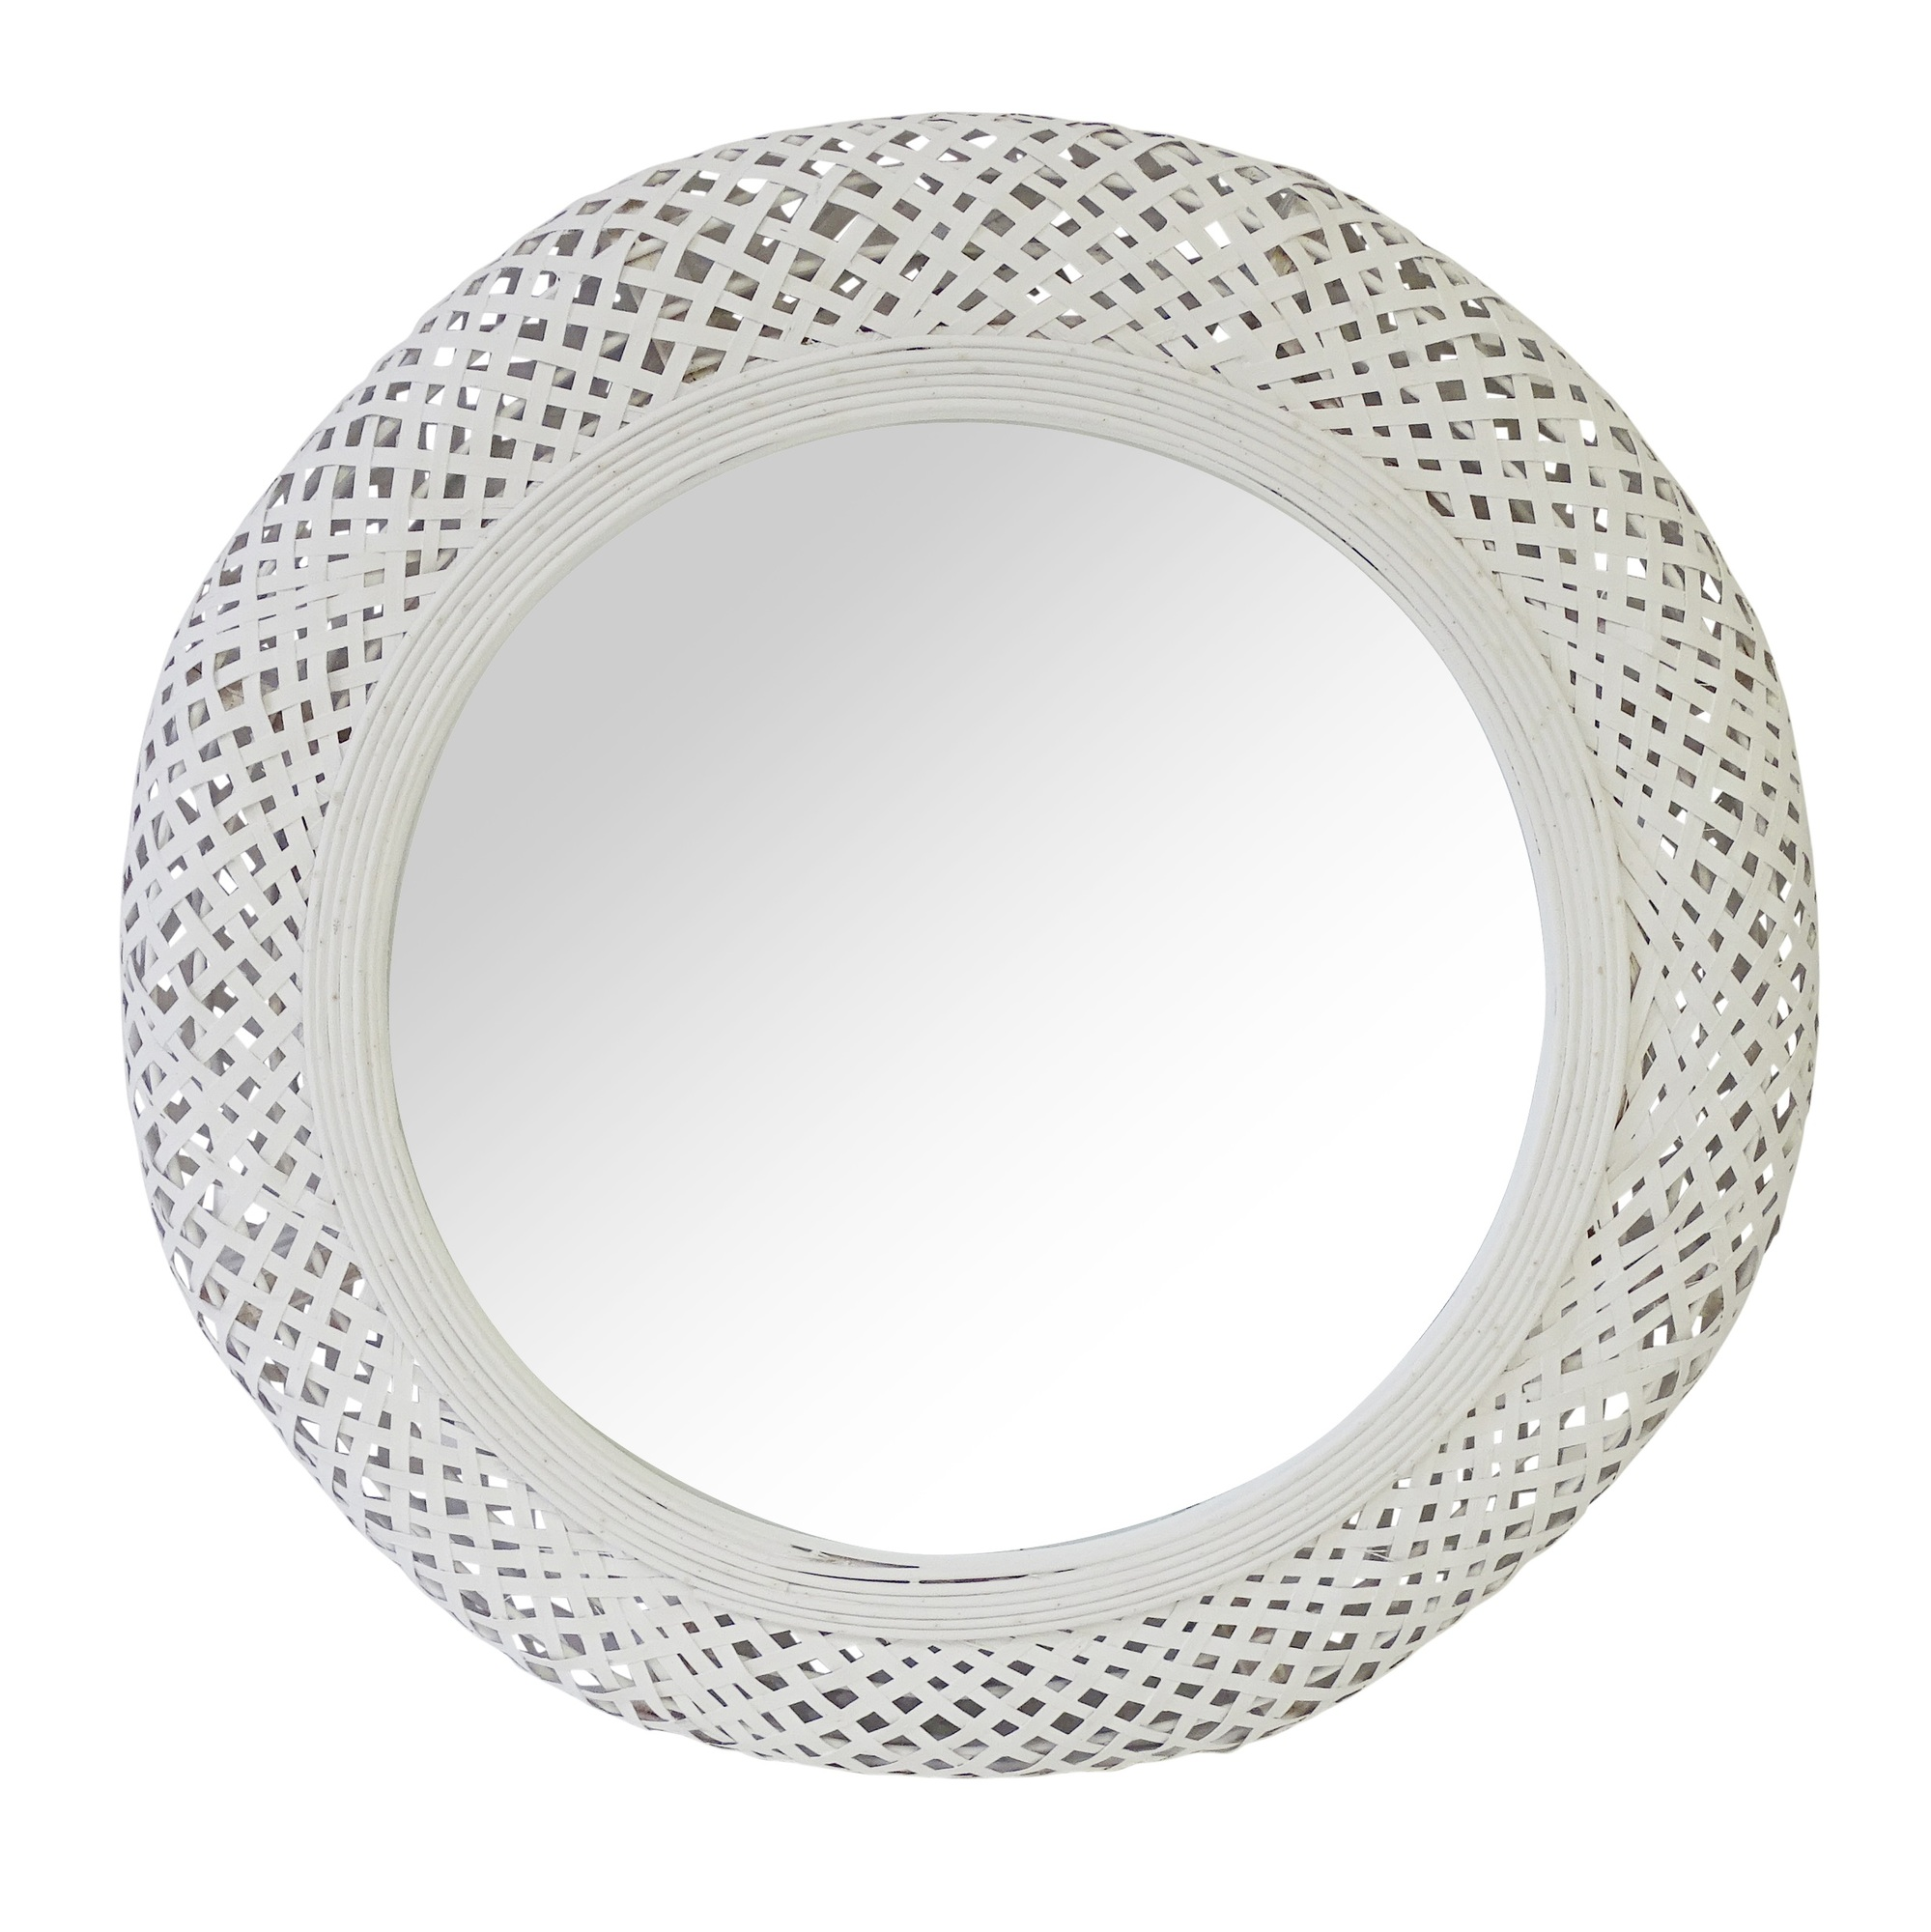 The Medford Collective White Miara Round Rattan Mirror Reviews Temple Webster